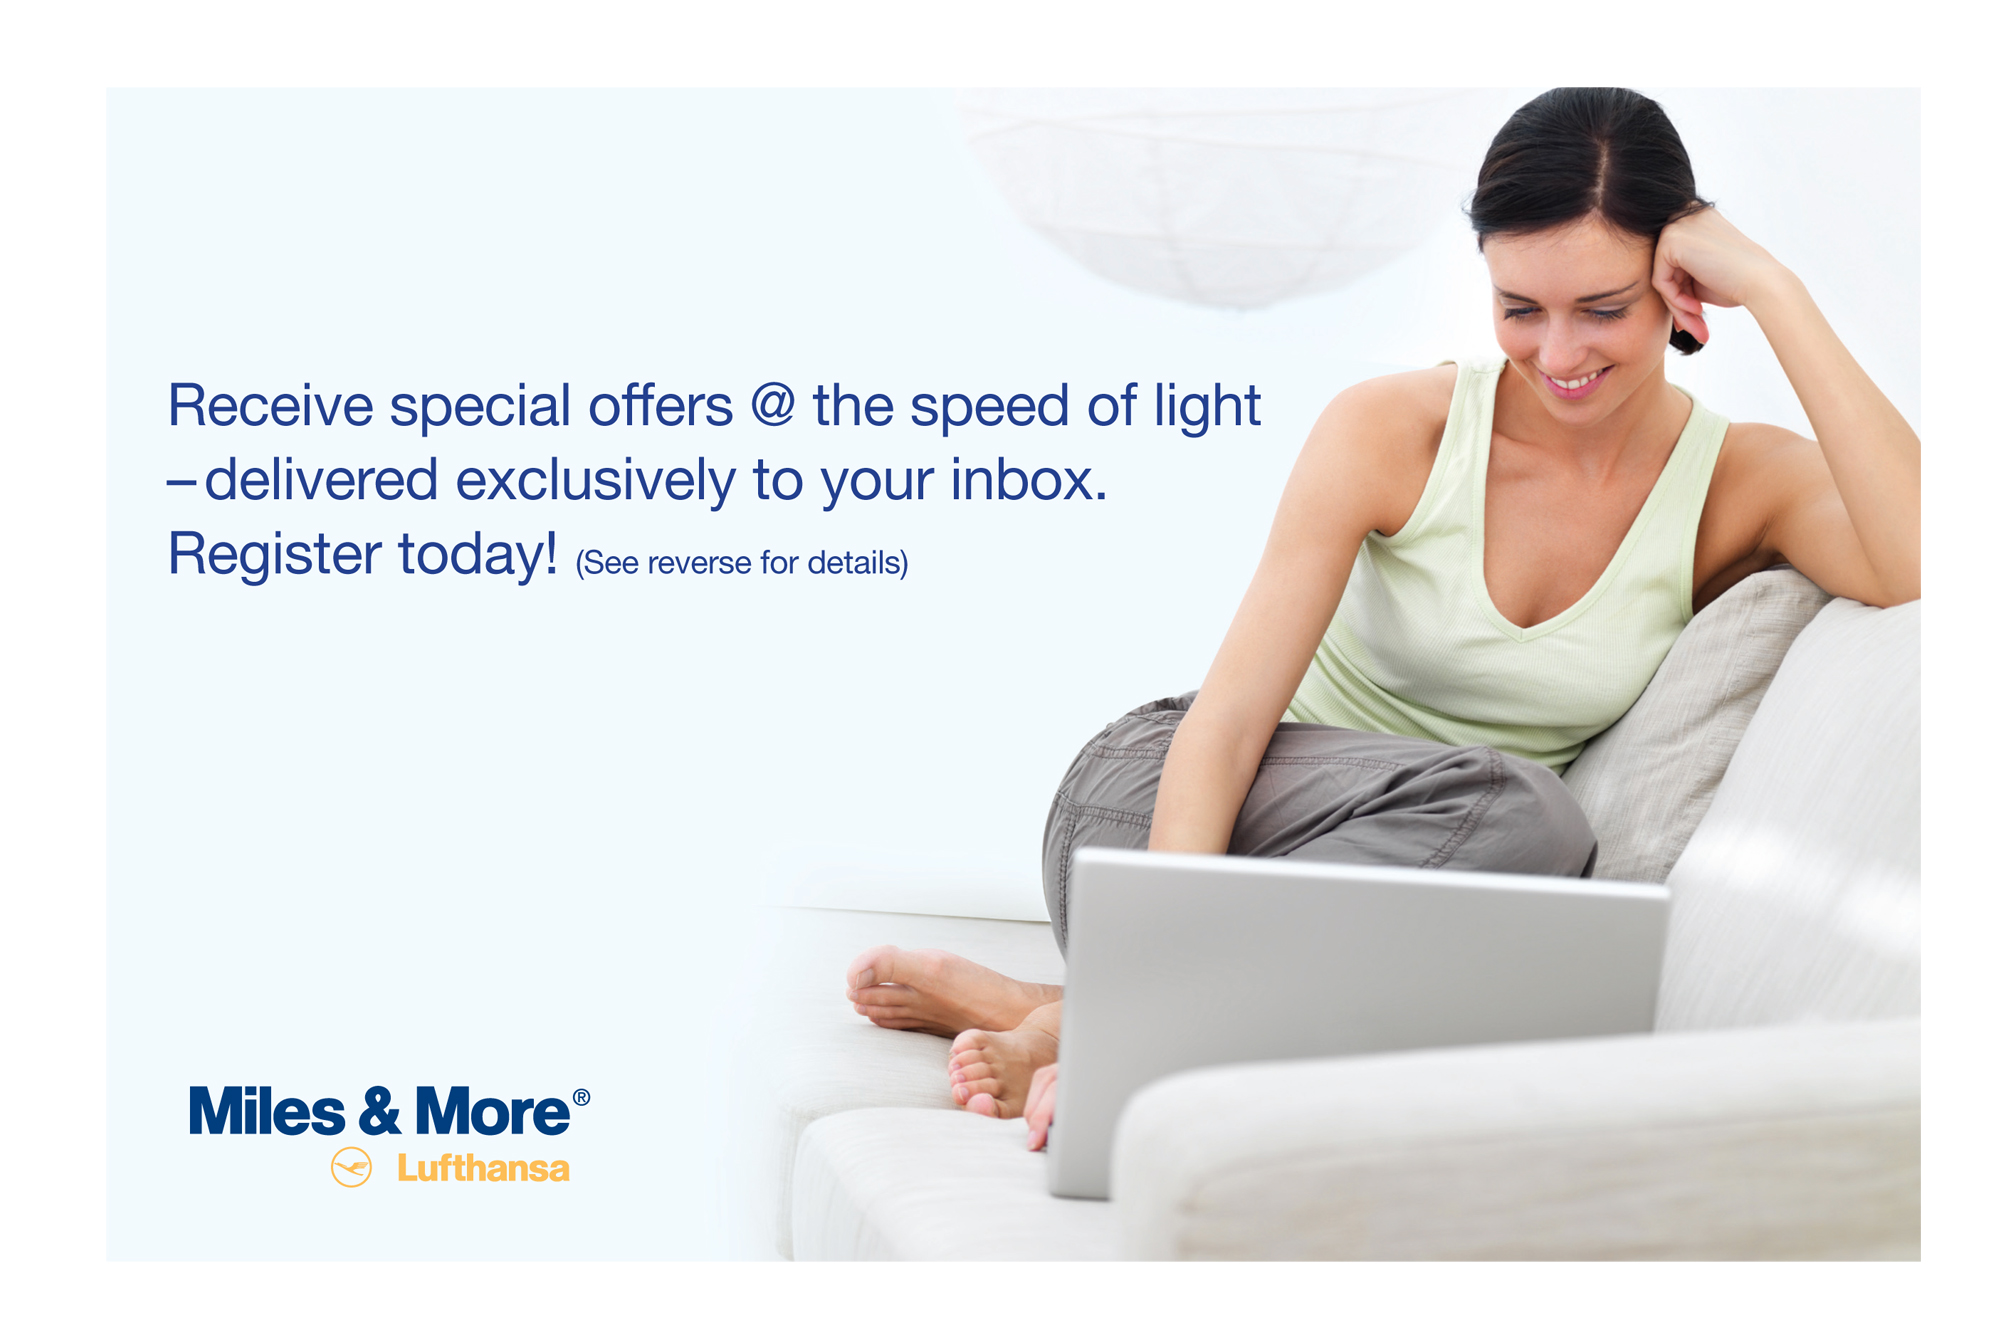 Lufthansa Miles & More Special Offer Registration Direct Mail